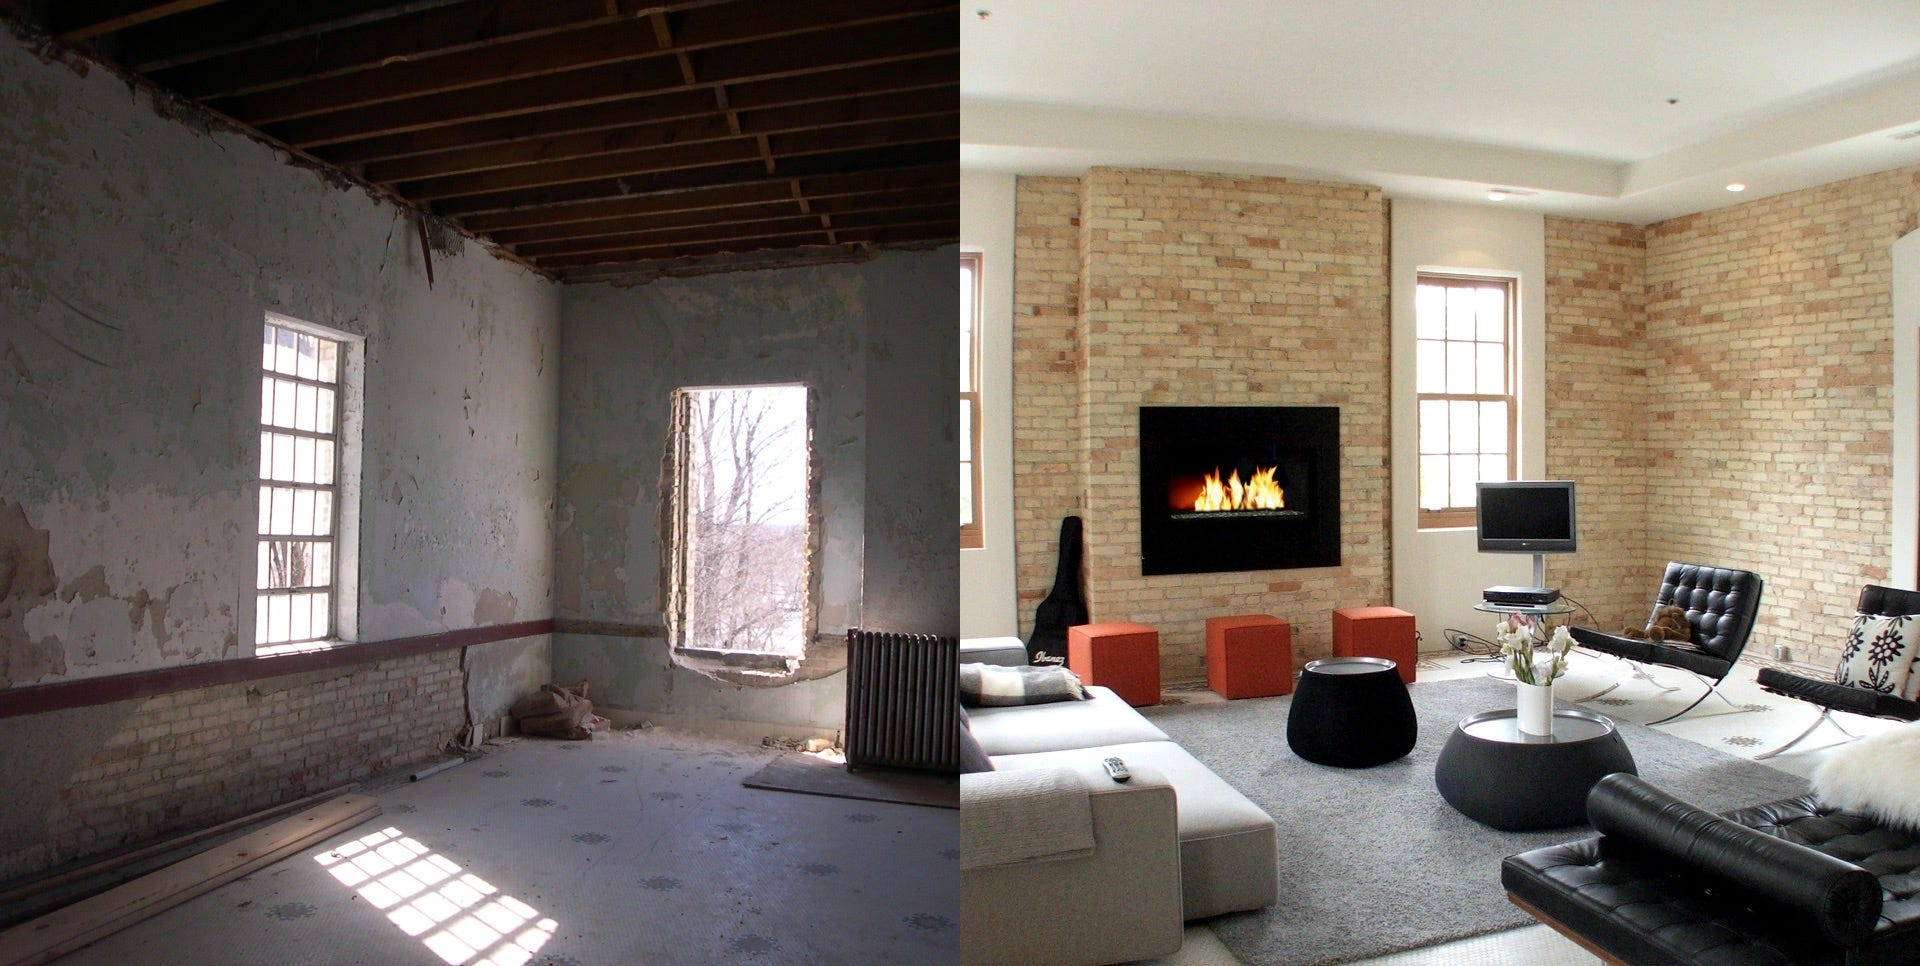 This before-and-after collage shows one of the residential units in The Village at Grand Traverse Commons. The space was once part of Northern Michigan Asylum, later renamed Traverse City State Hospital.